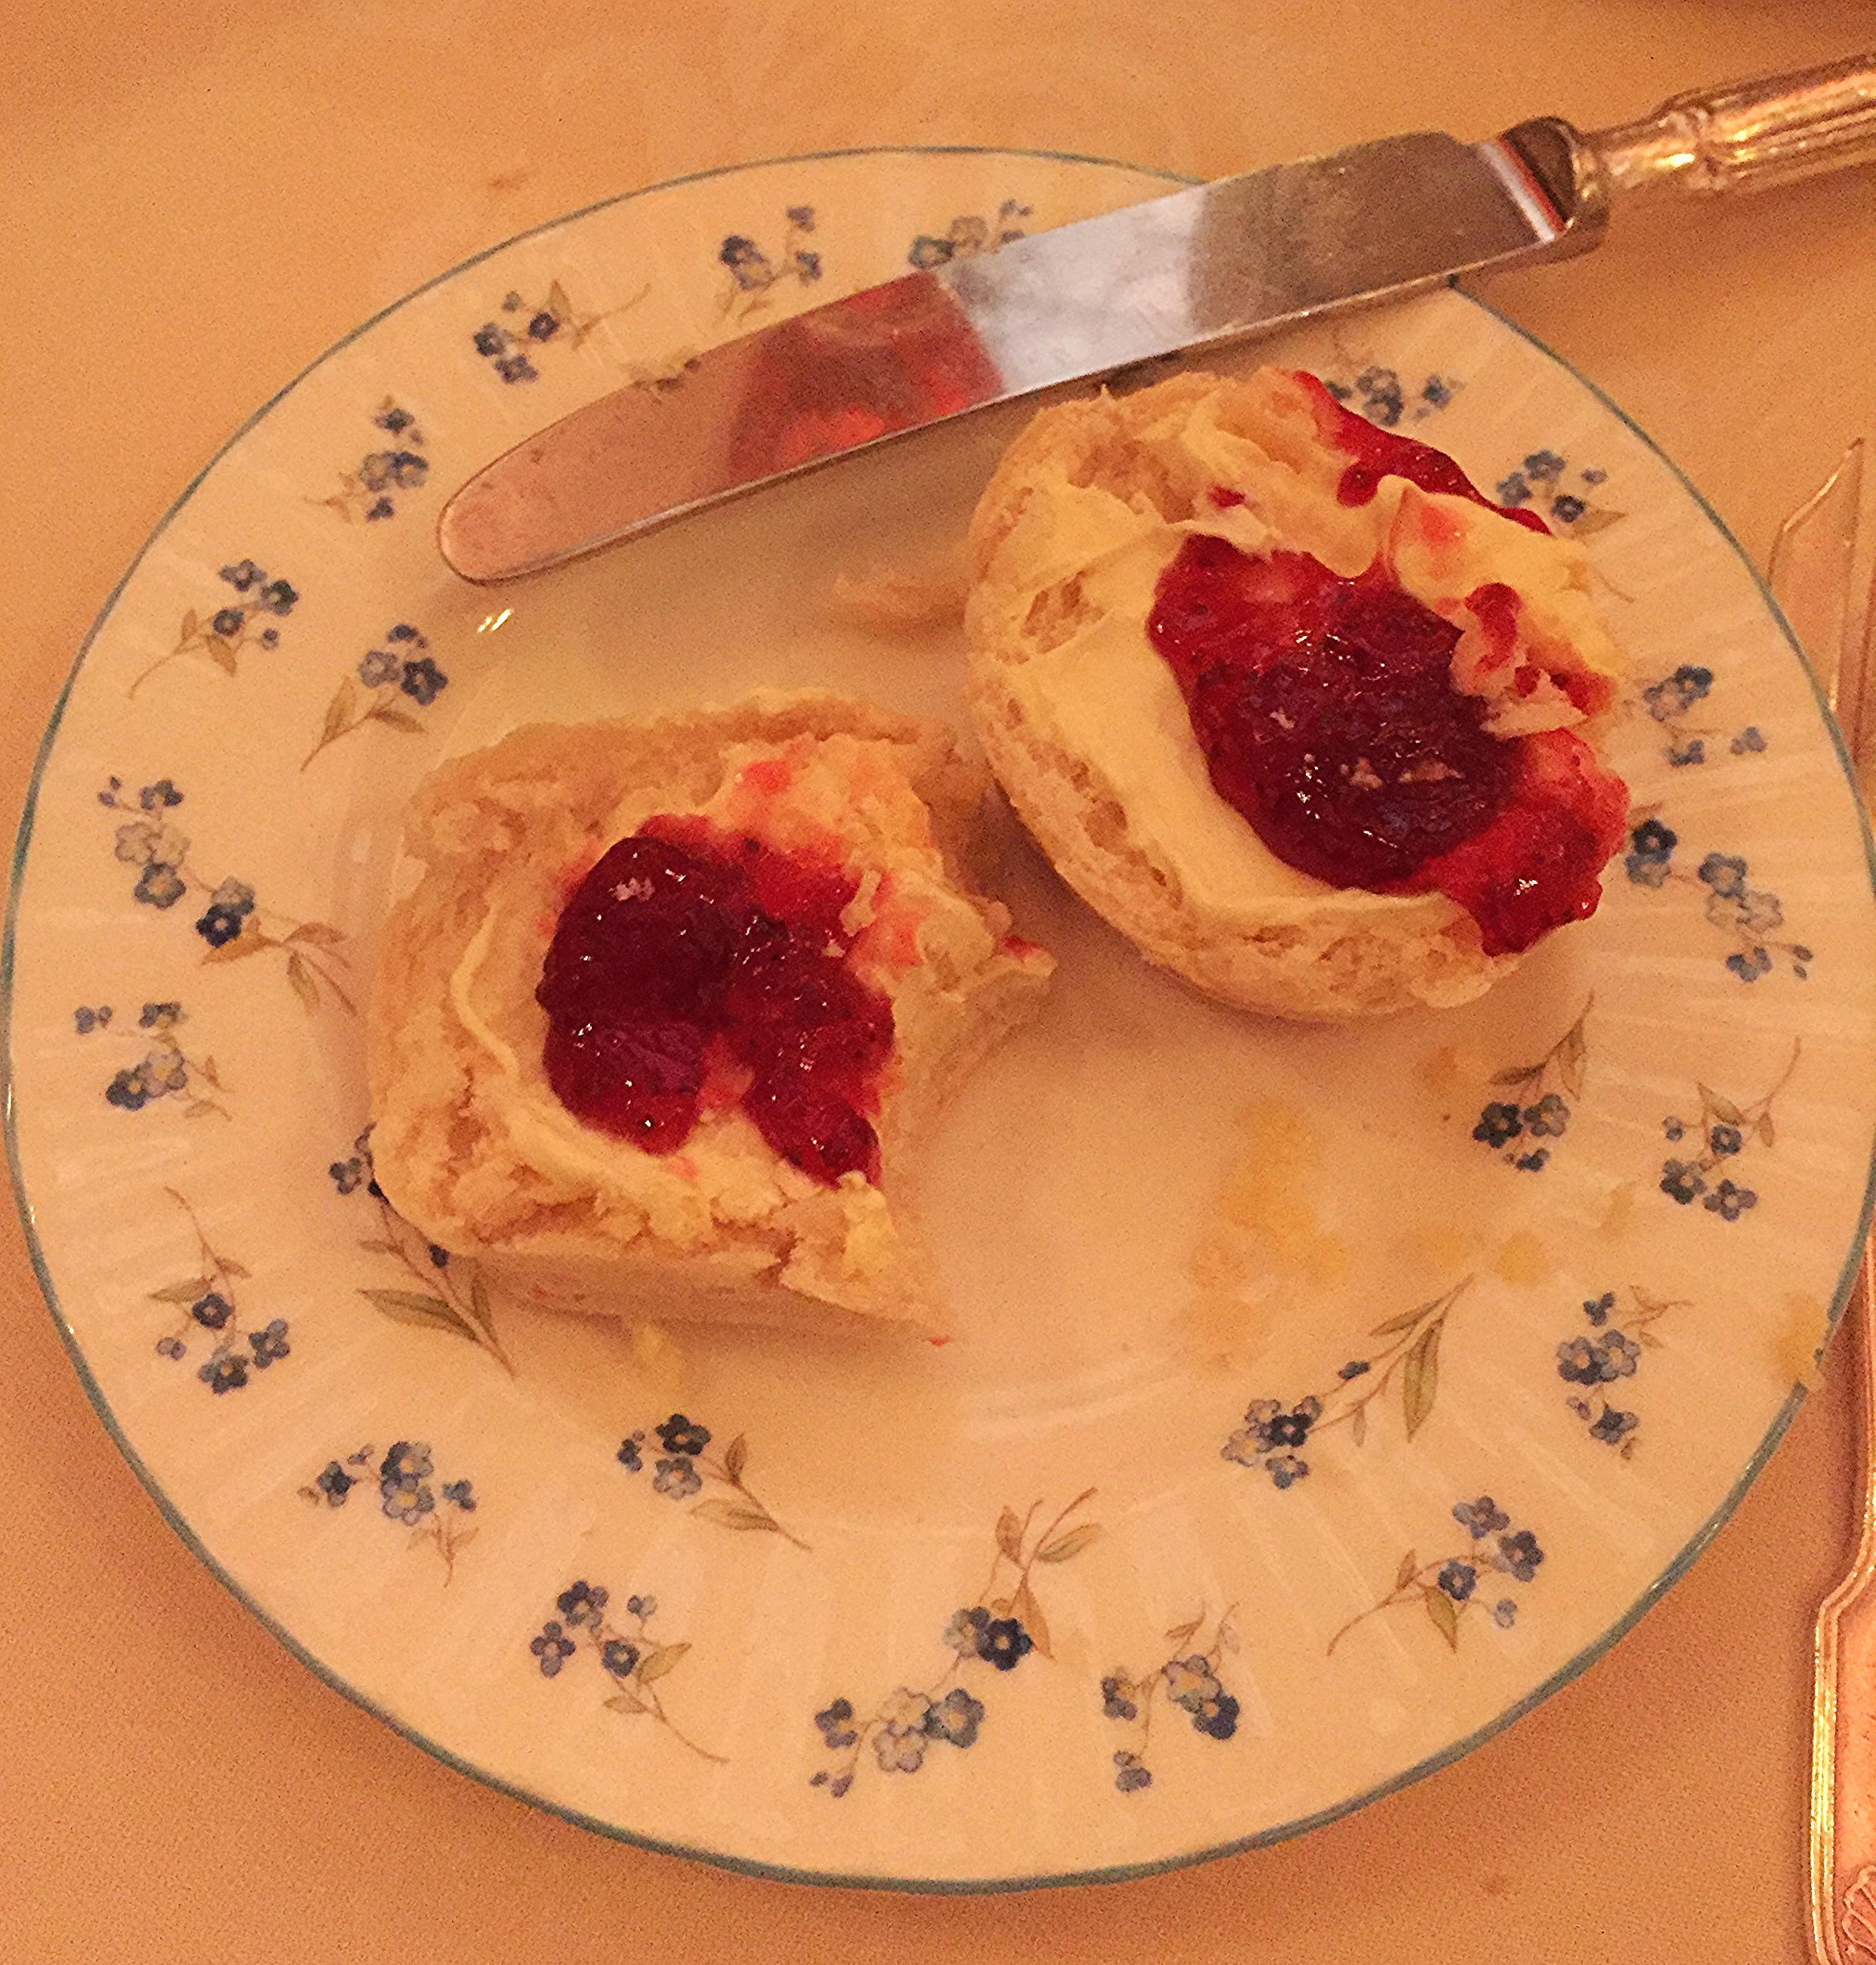 Scones - Review The Ritz Afternoon Tea